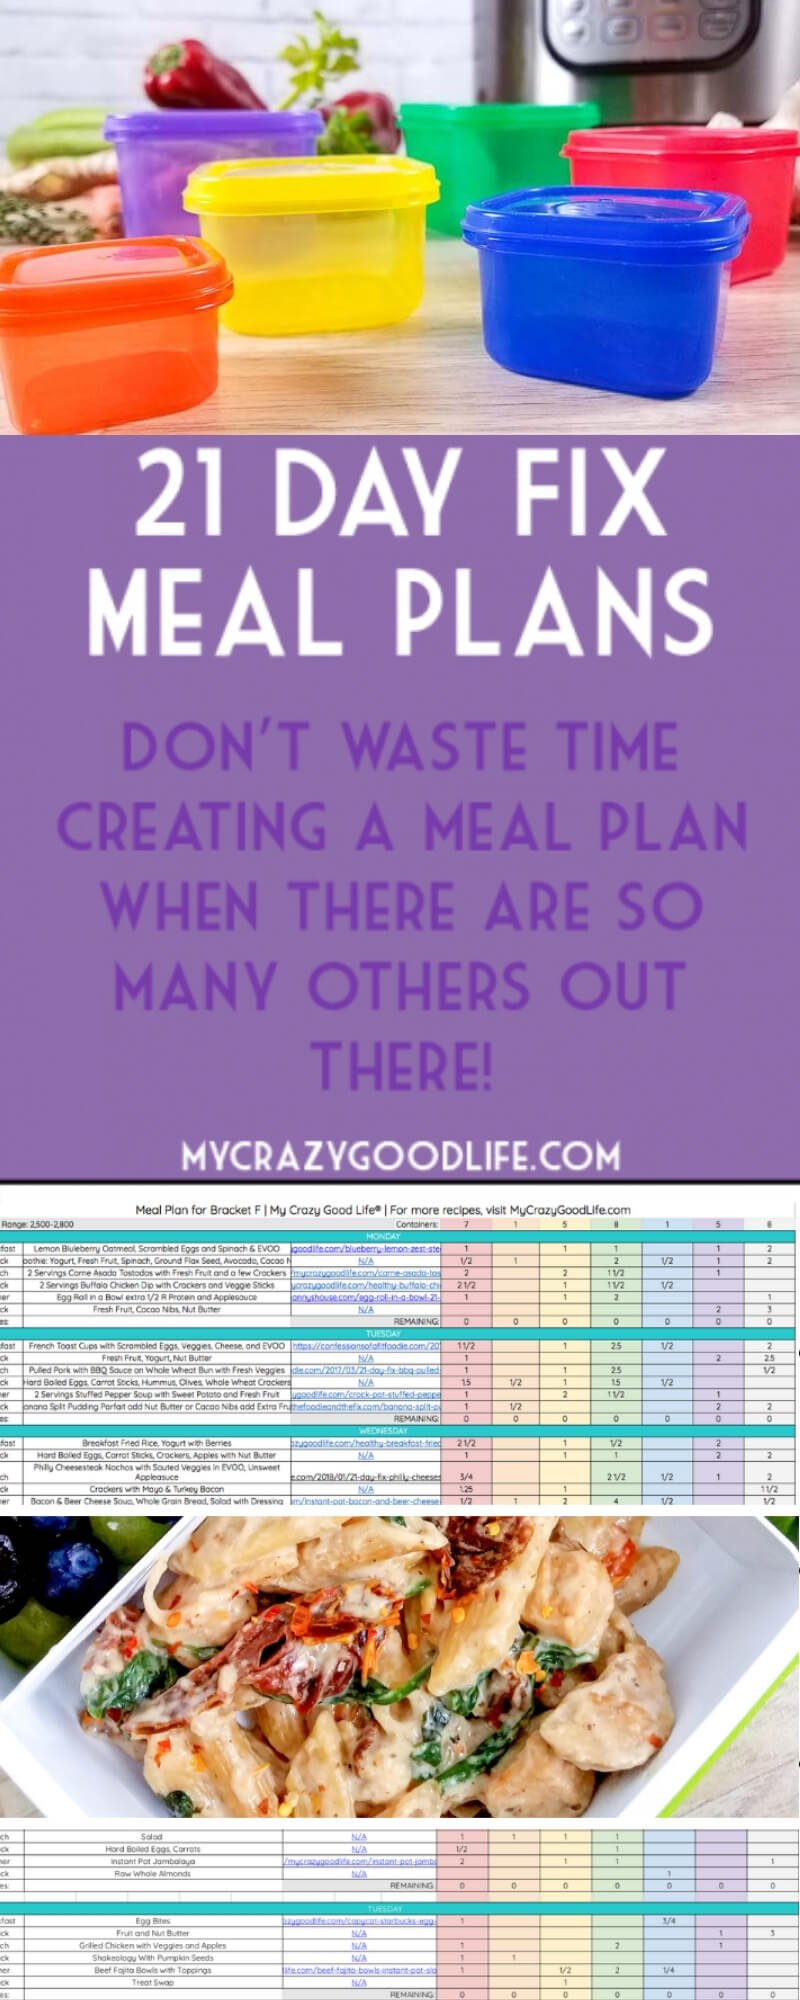 21 Day Fix Meal Plans - My Crazy Good Life